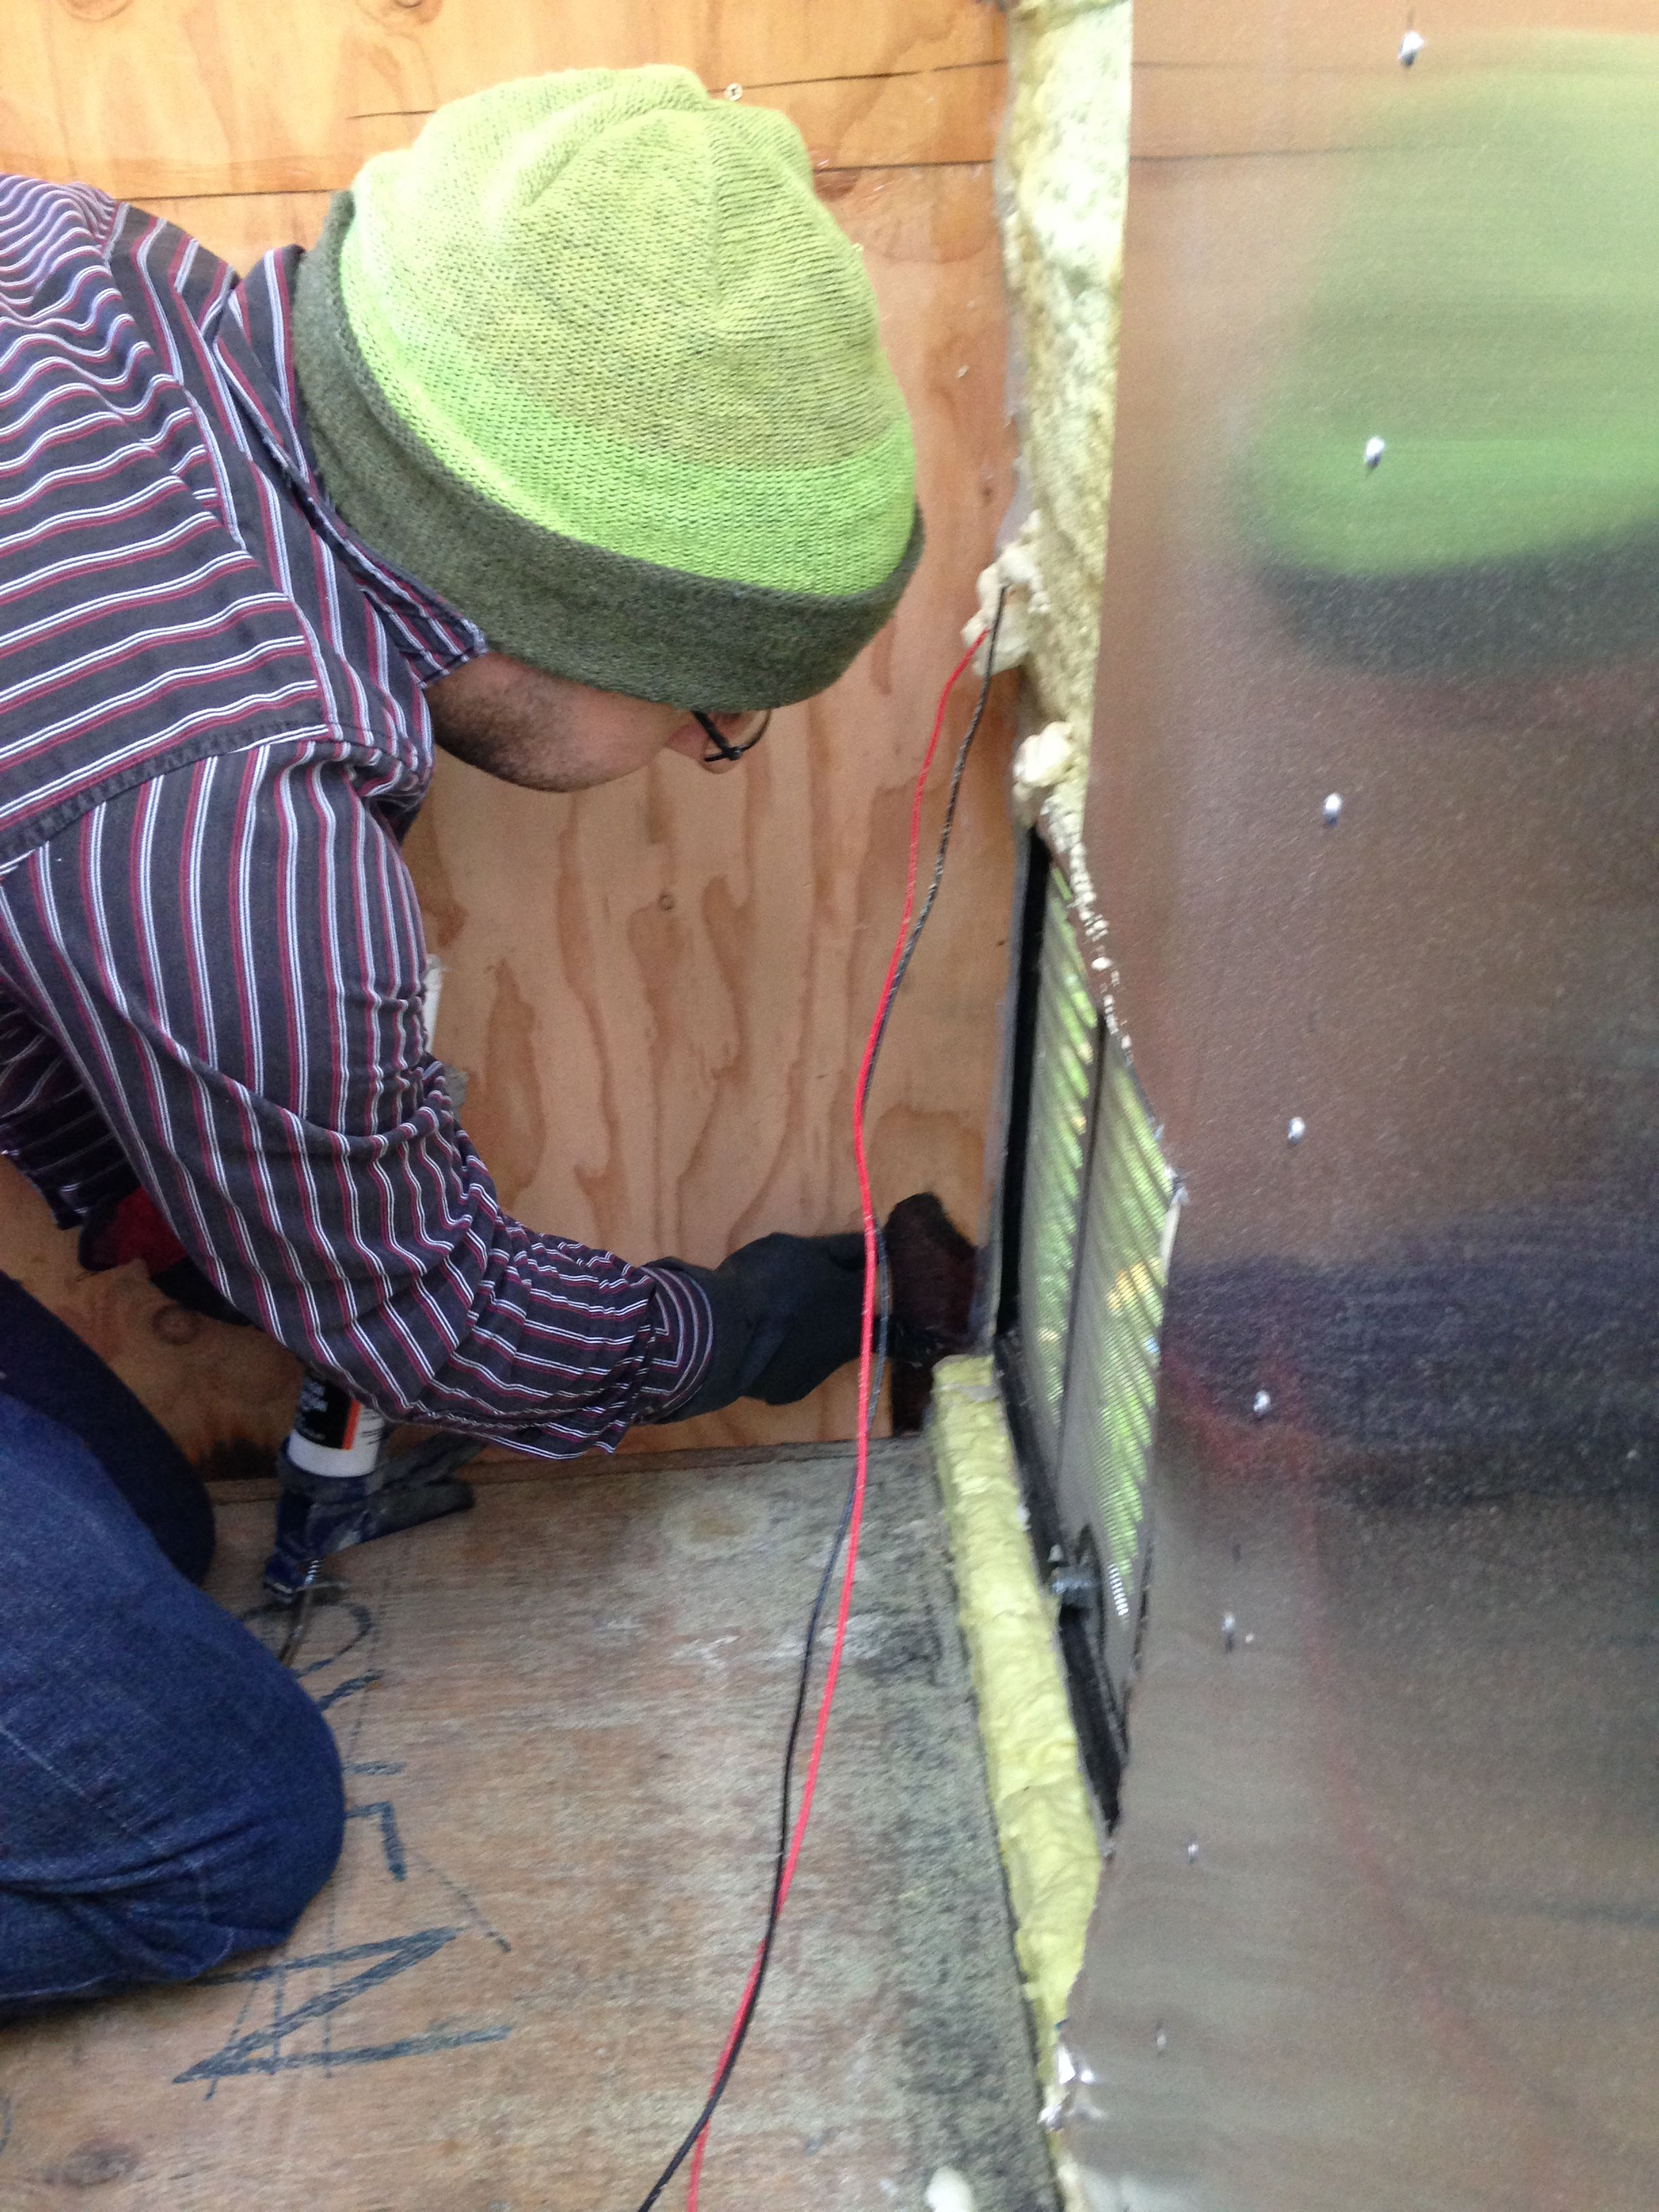 Pin by Jill Guthrie on Airstream repairs and builds